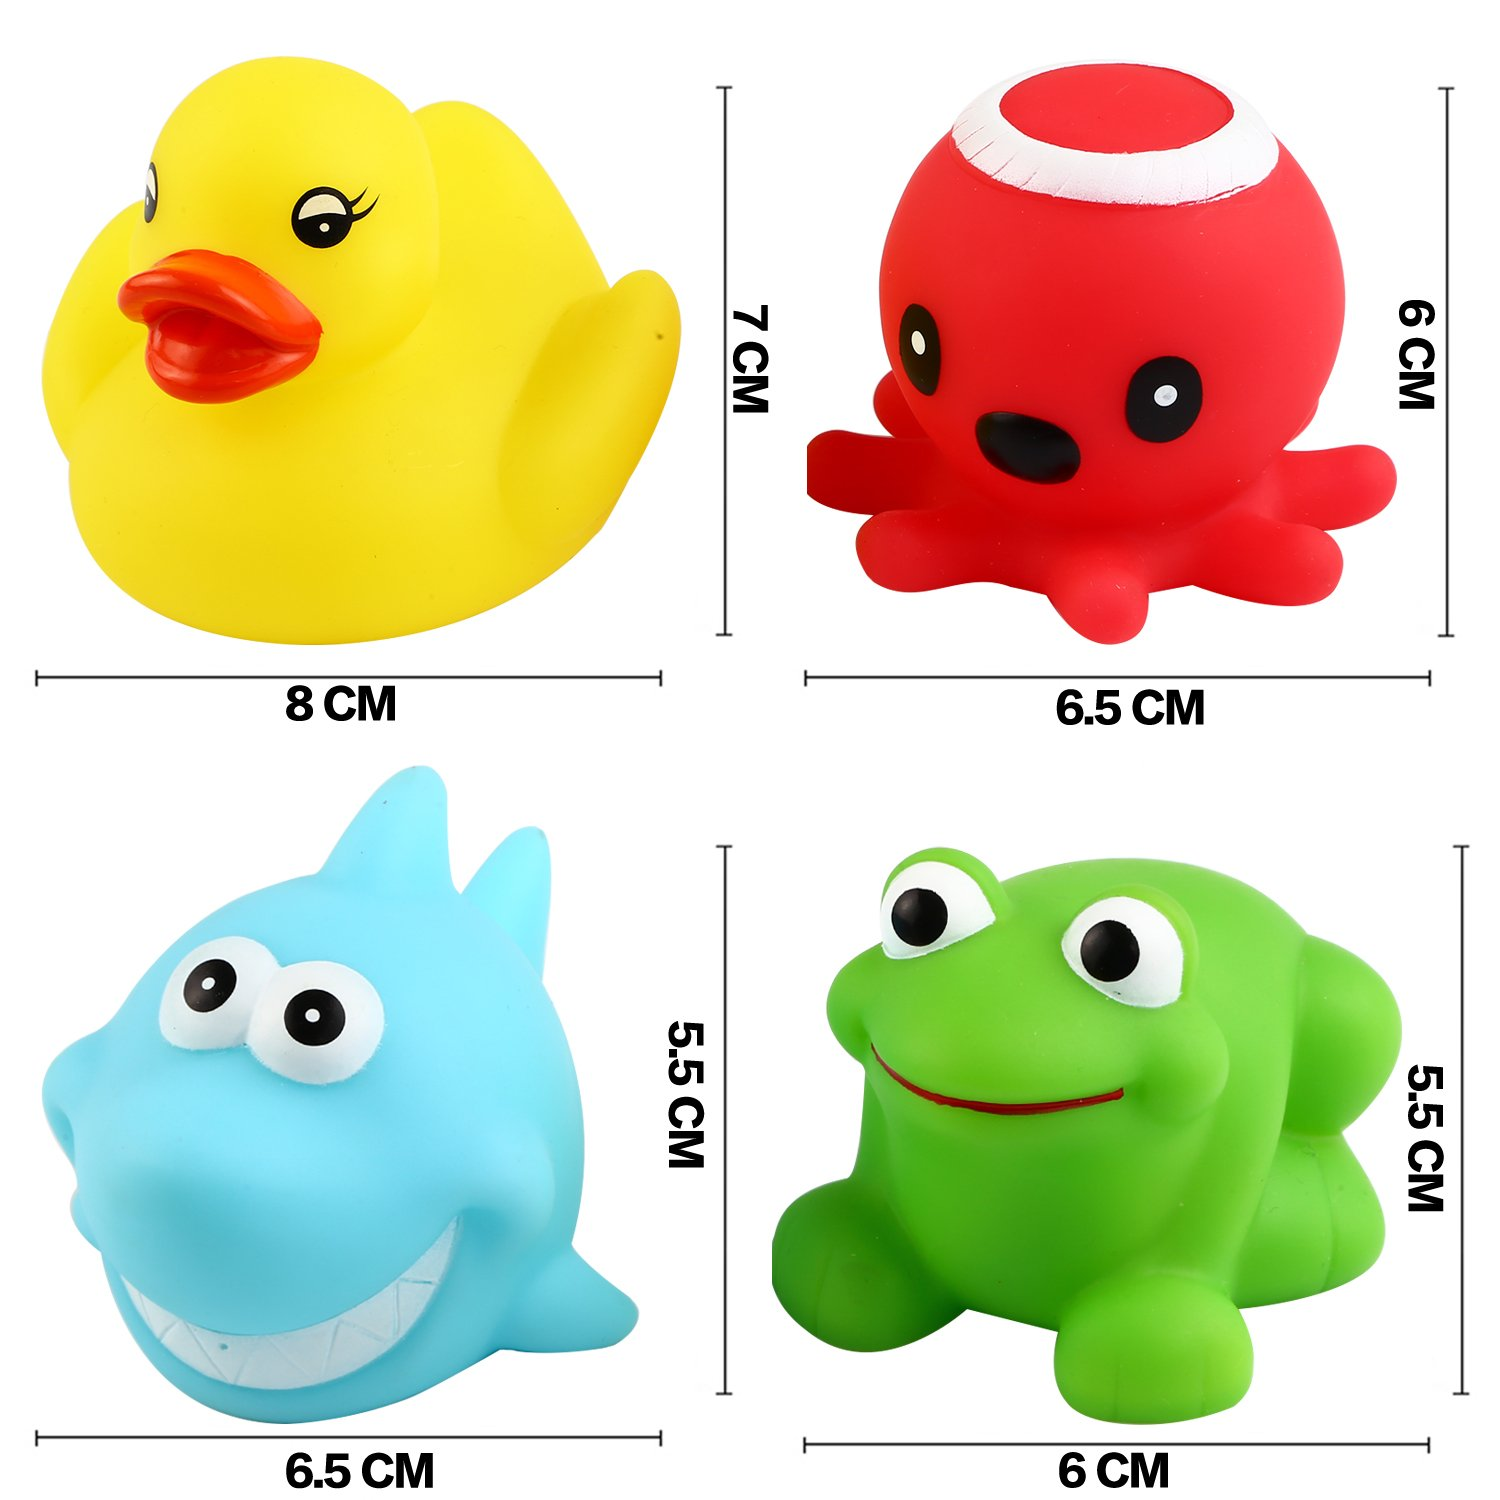 Yeonha Toys Bath Toy,Can Flashing Colourful Light Light Up Baby Shower Bathtime Bathtub Toy for Bathroom Kid Boys Girl Toddler Child,Rubber Ducks Octopus Frog Shark 4 Pack Floating Bath Toy